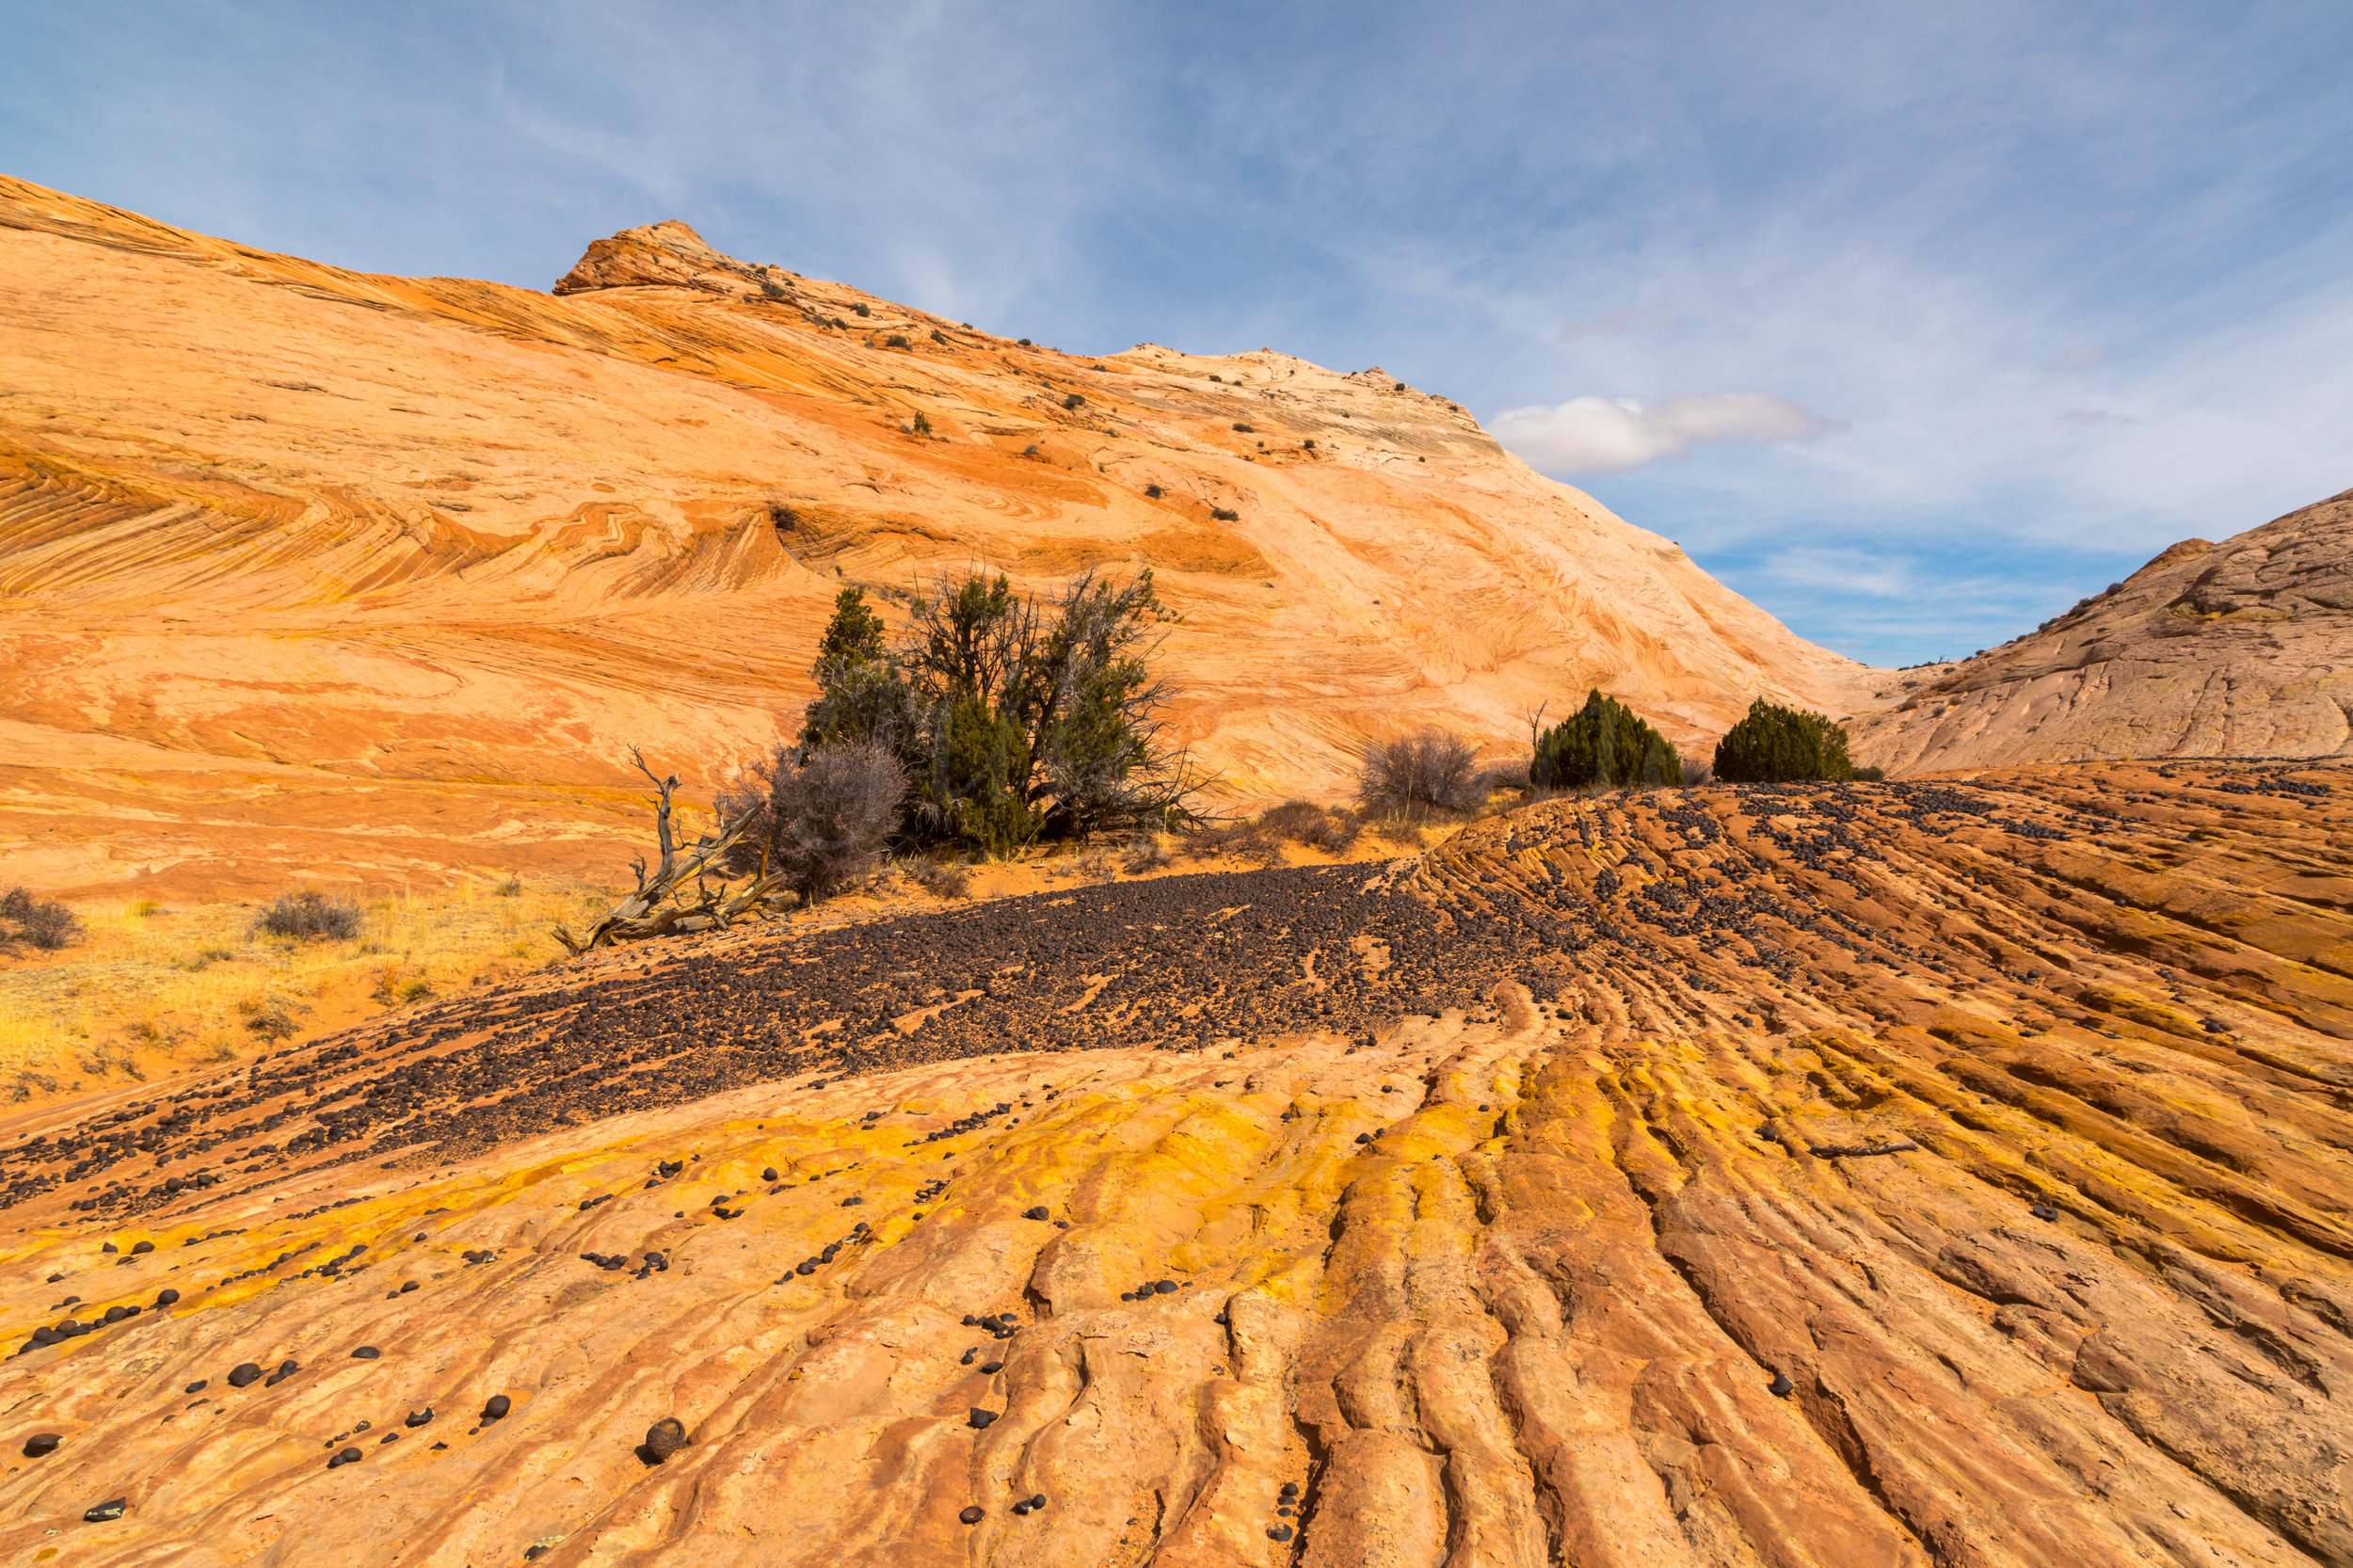 Escalante National Monument, Image # 5993